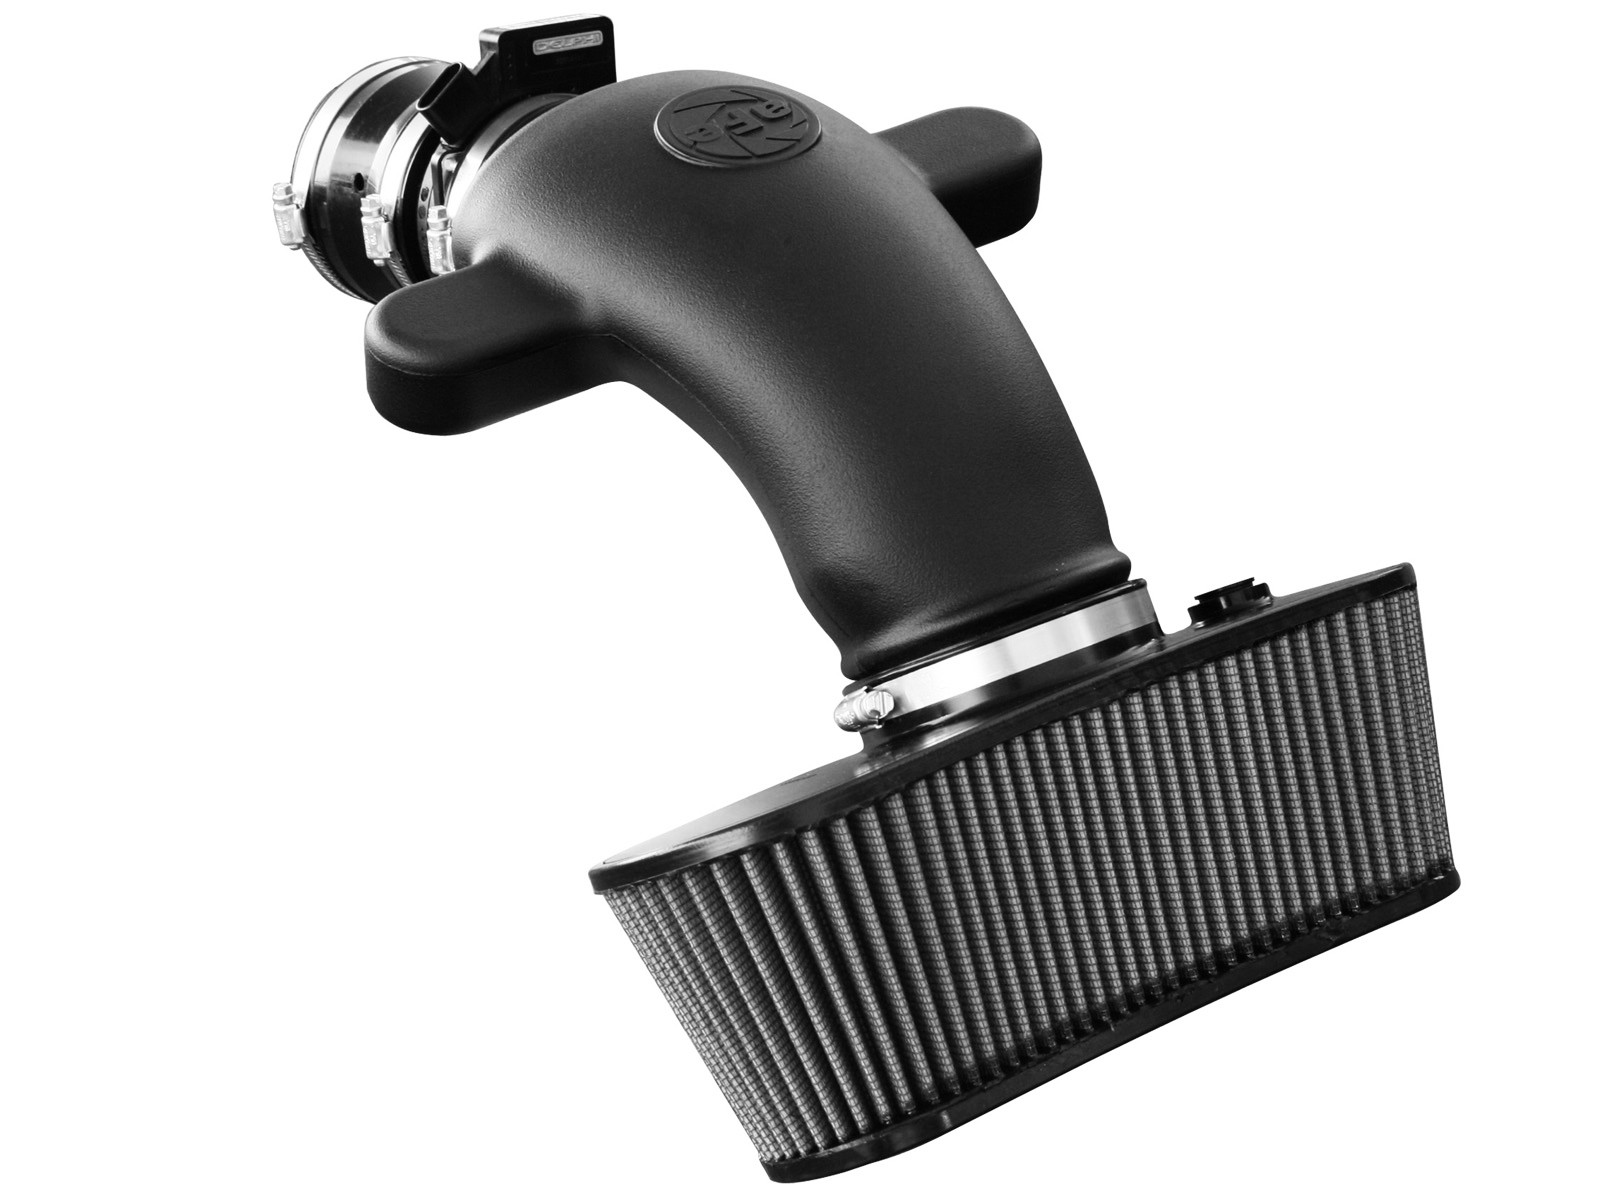 aFe POWER 51-10902 Magnum FORCE Stage-2 Pro DRY S Cold Air Intake System